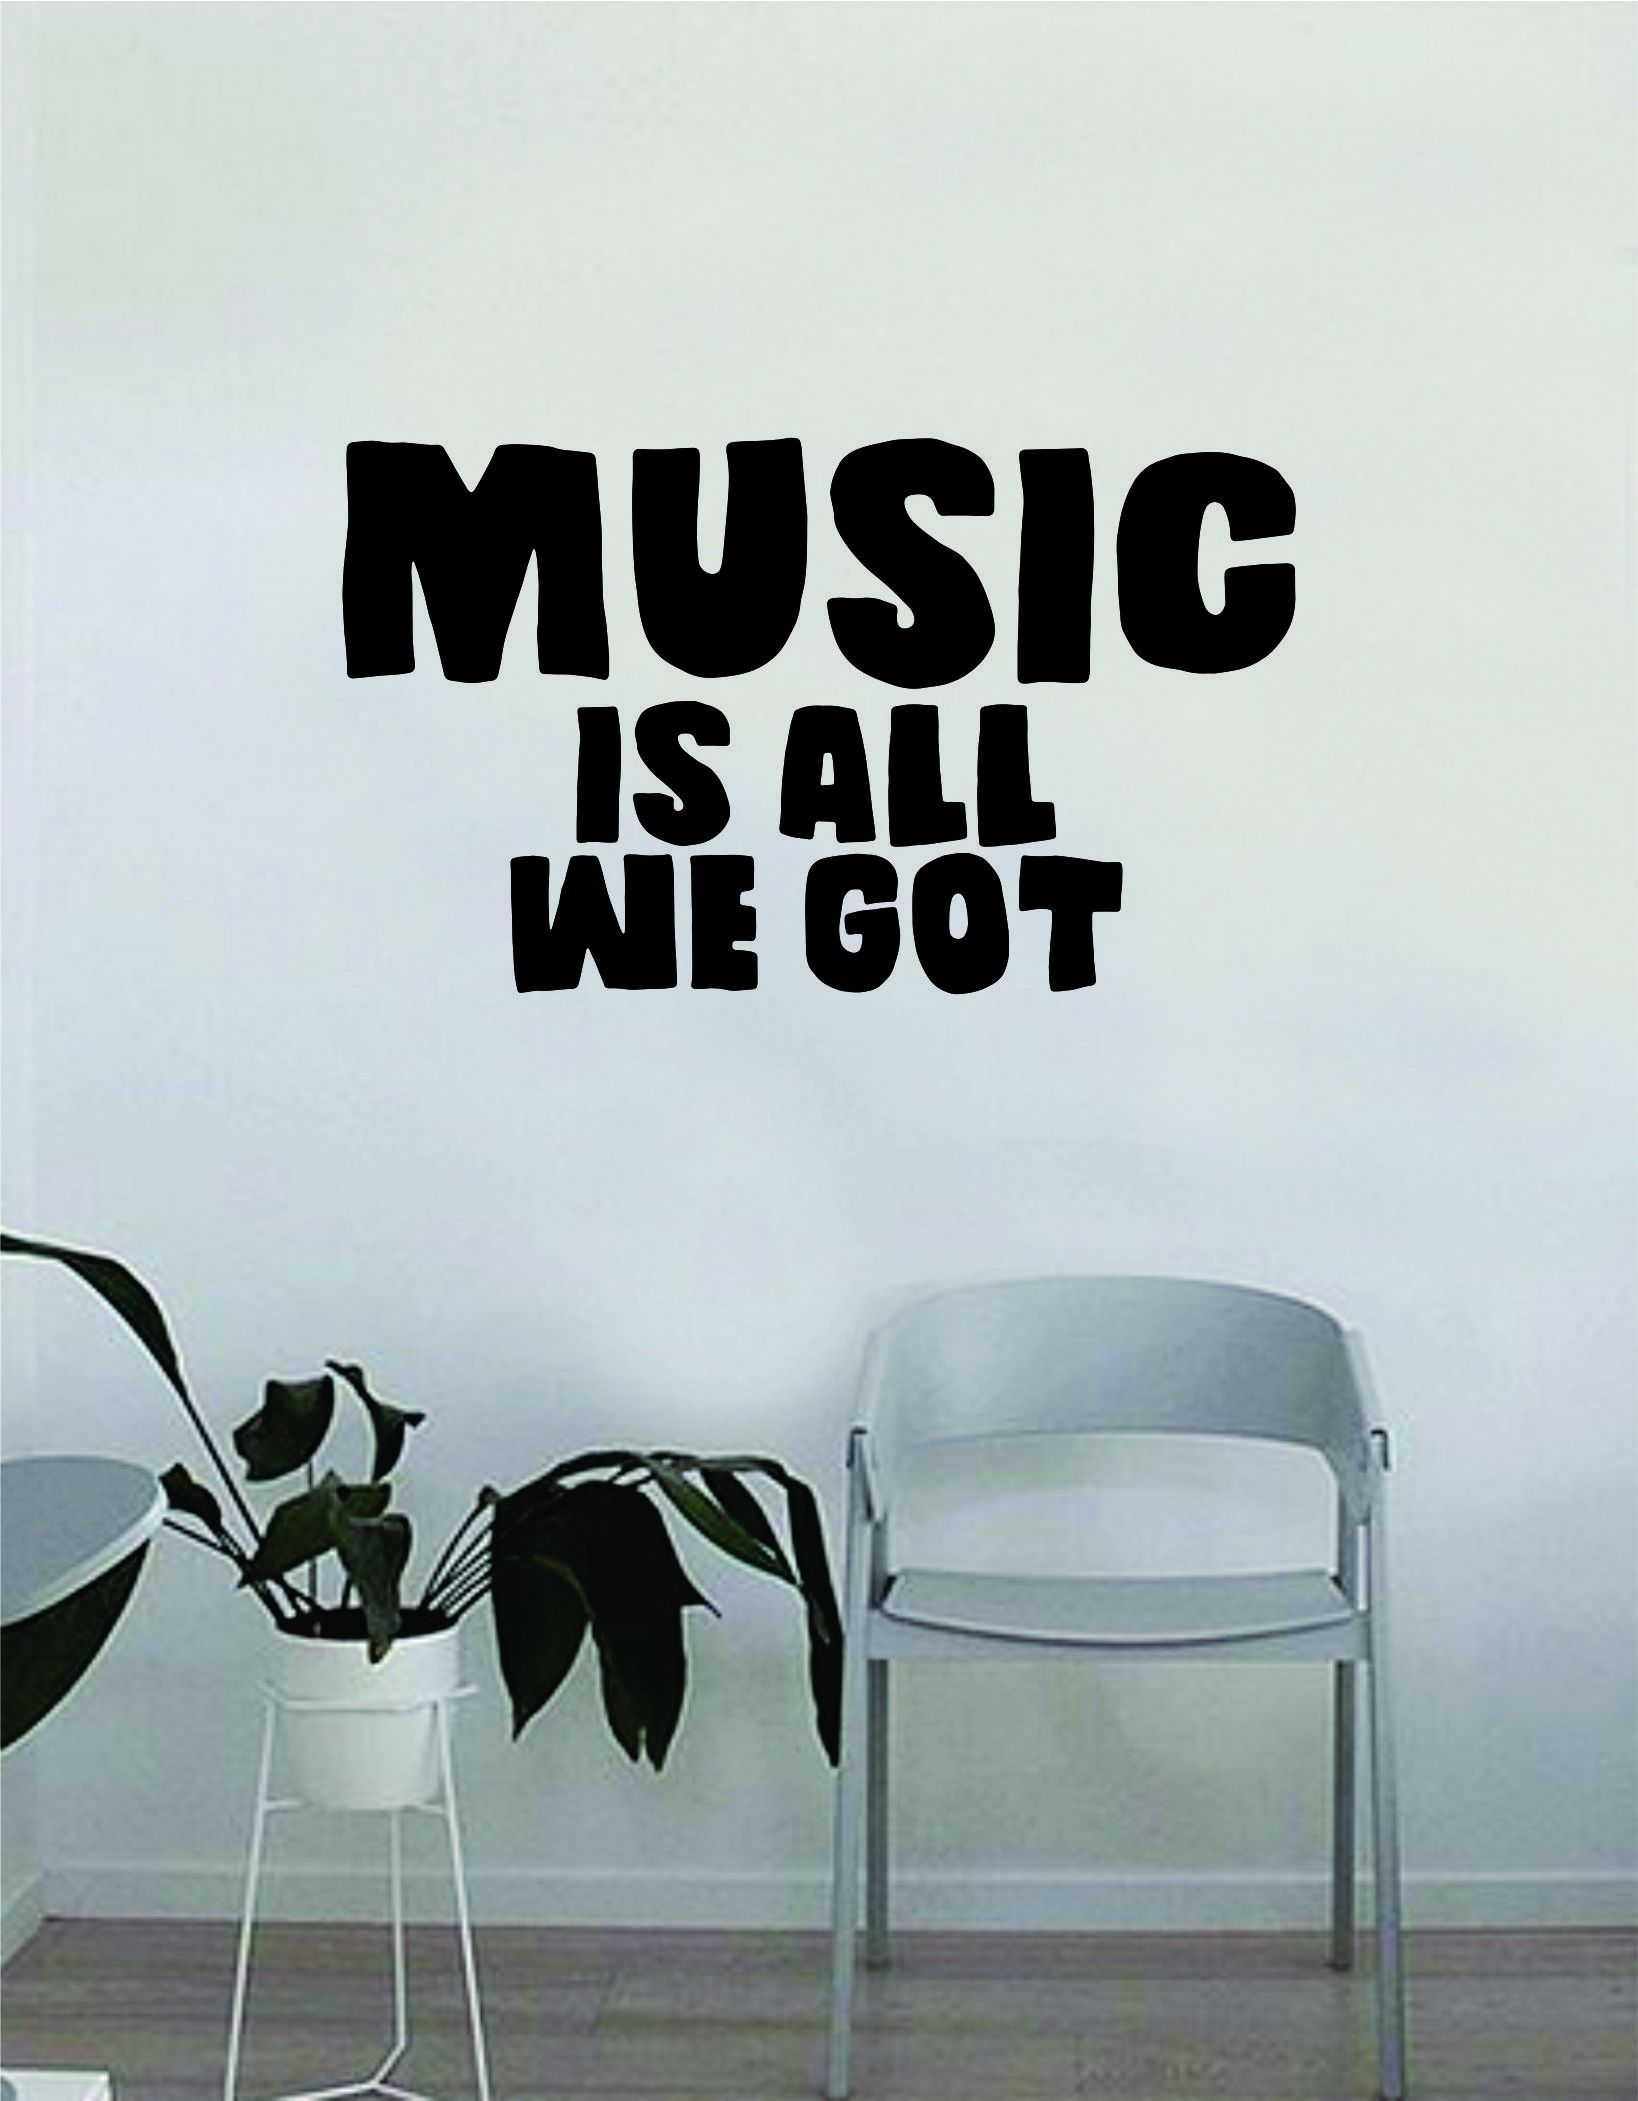 Chance the rapper music is all we got quote decal sticker wall vinyl